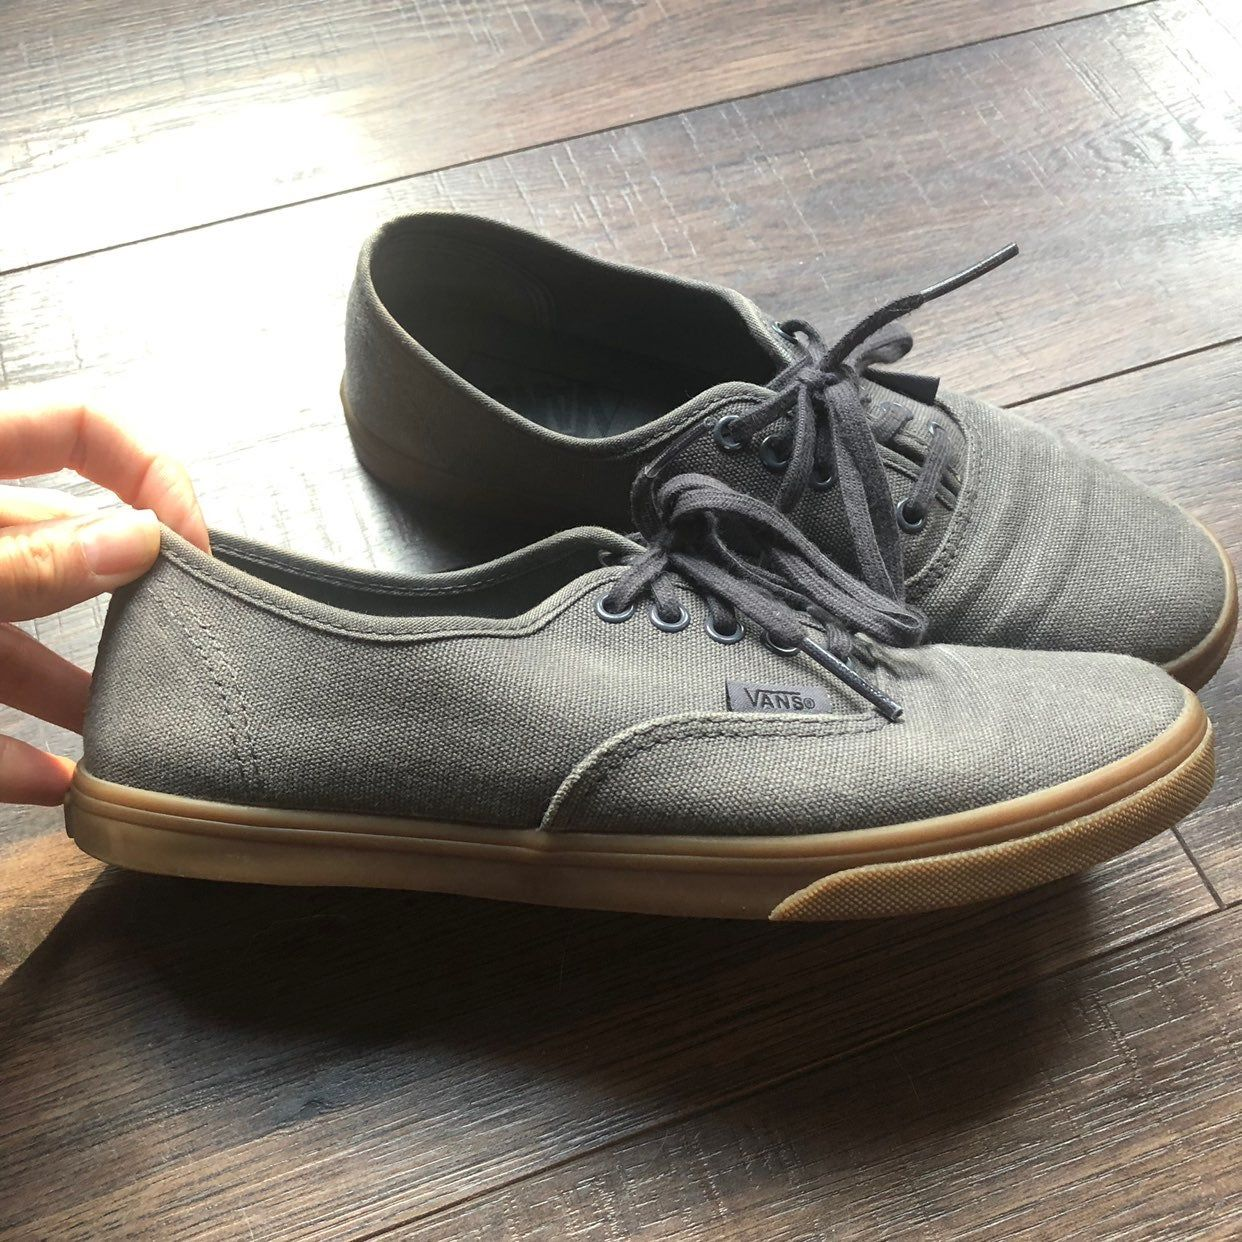 like new vans. barely used. has some defects to gum sole as